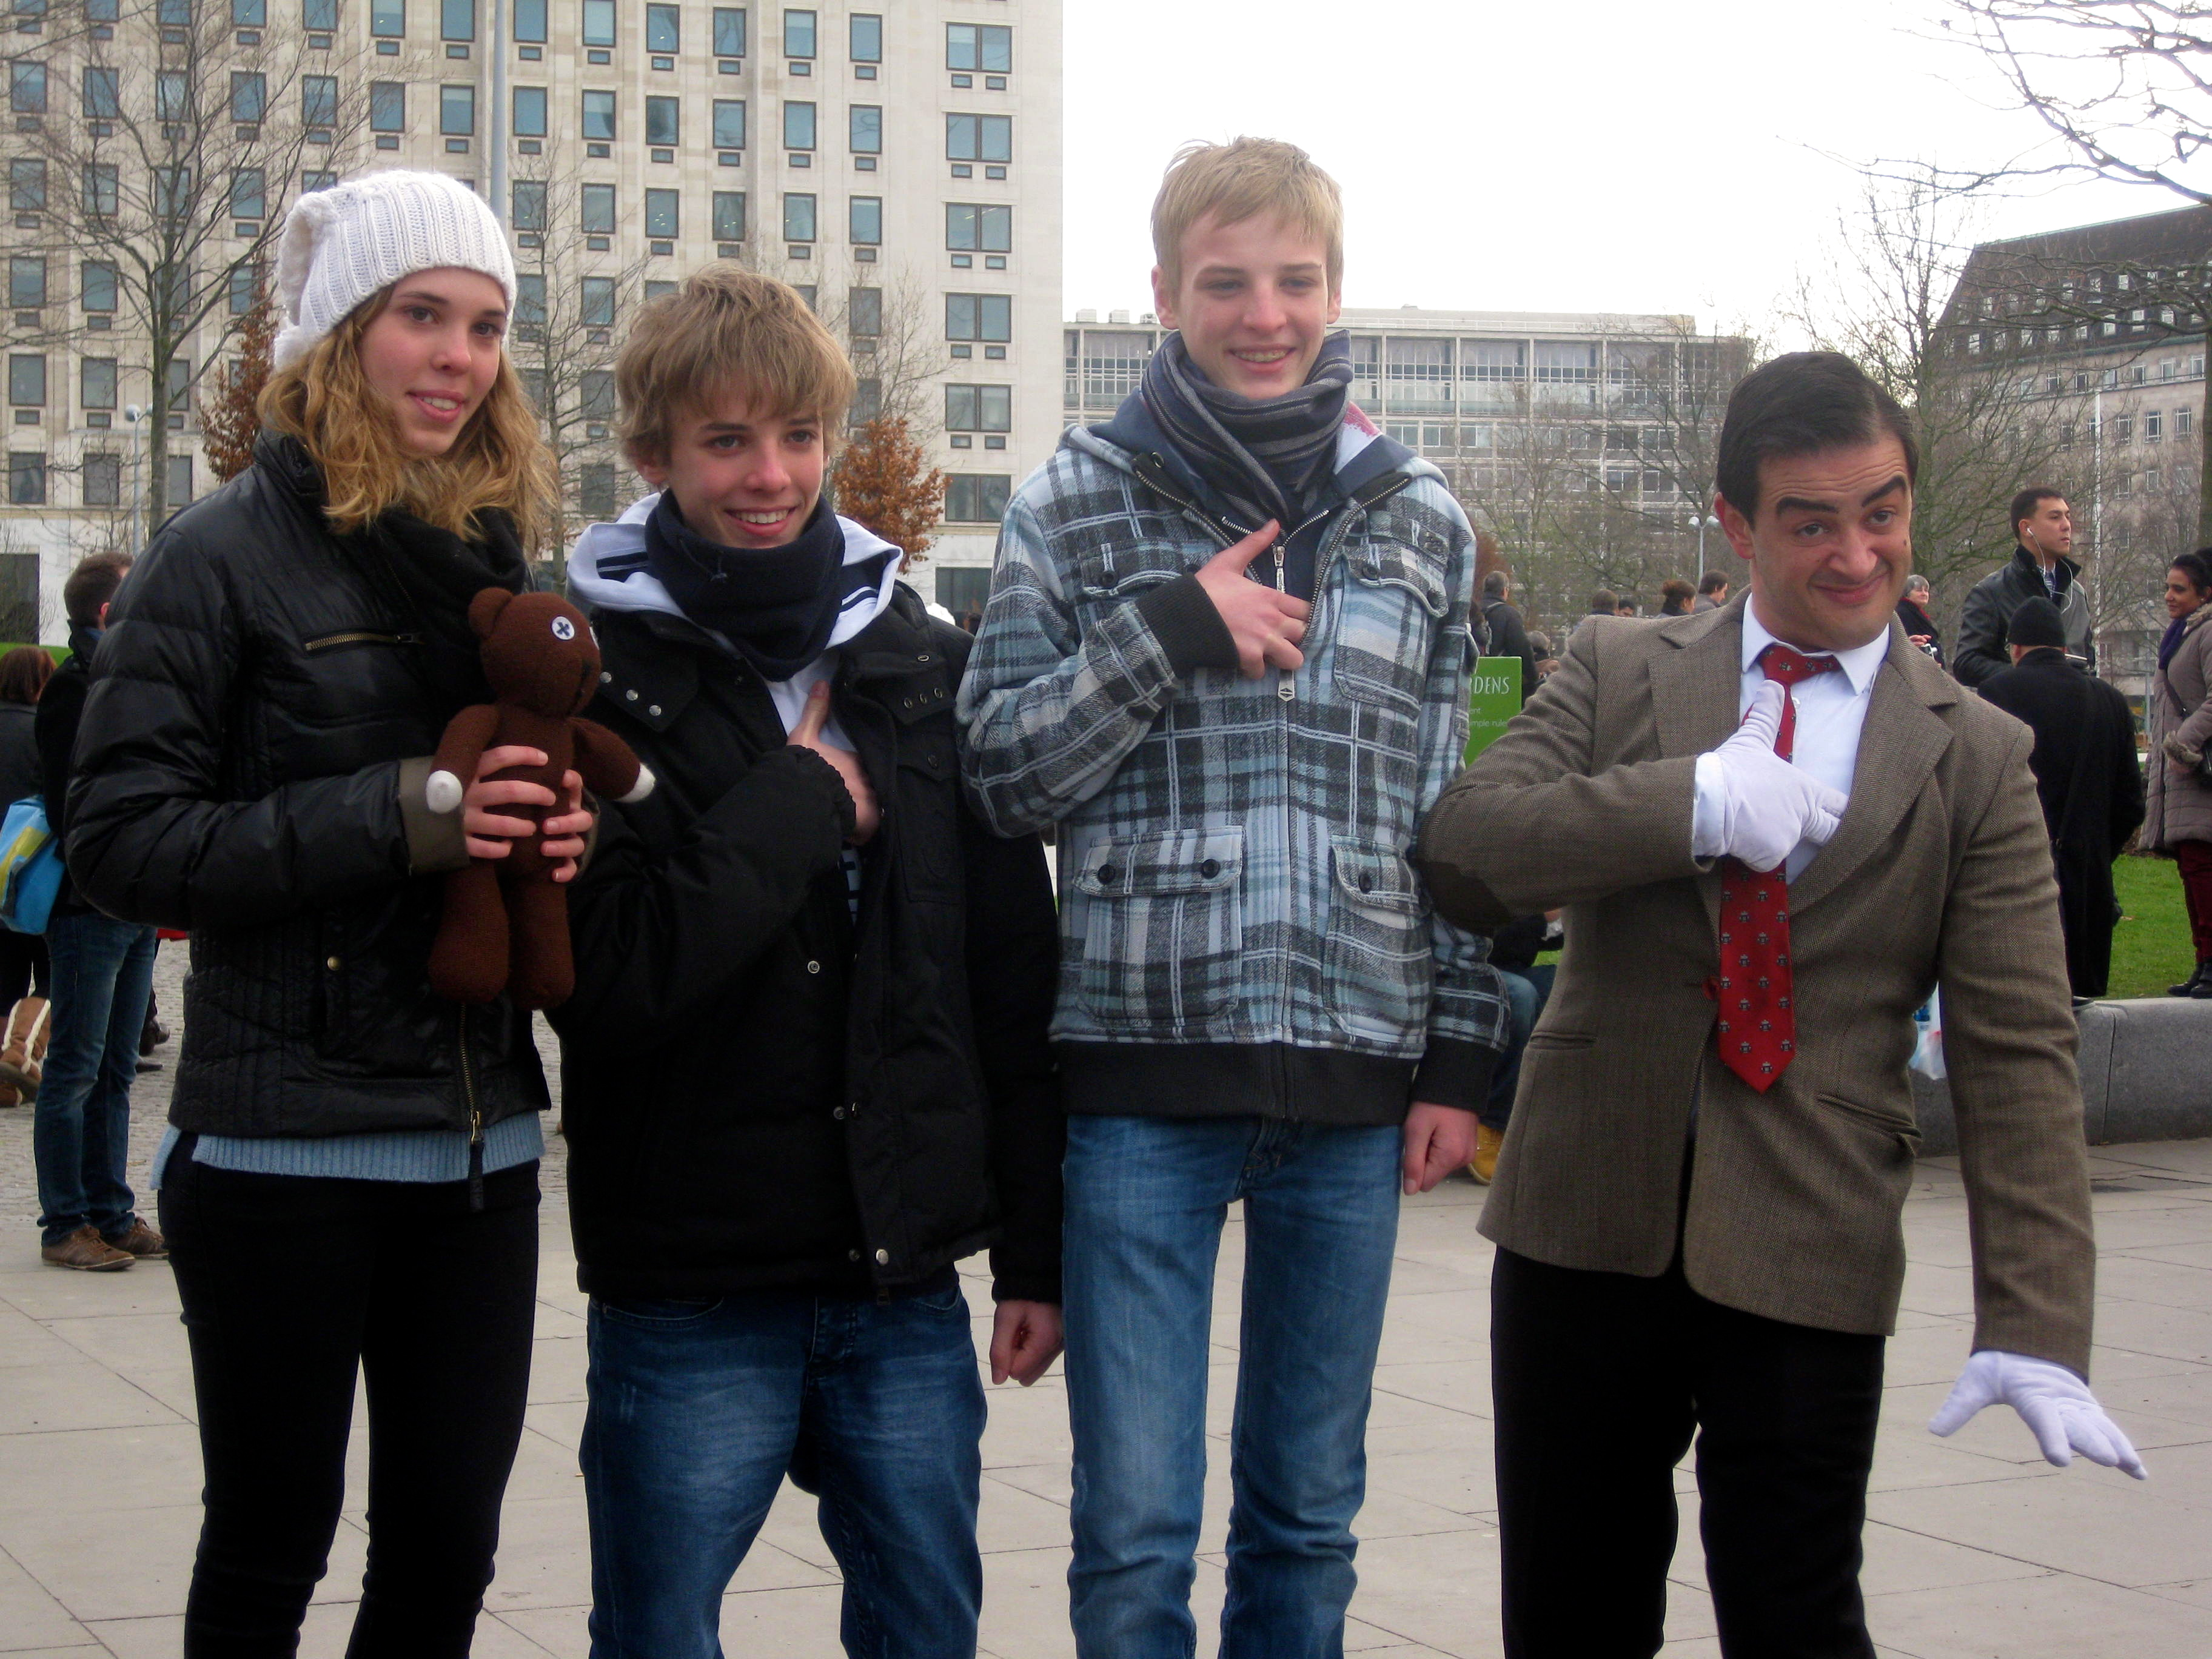 Italian teens & Mr Bean performer, London Southbank. Copyright Gretta Schifano